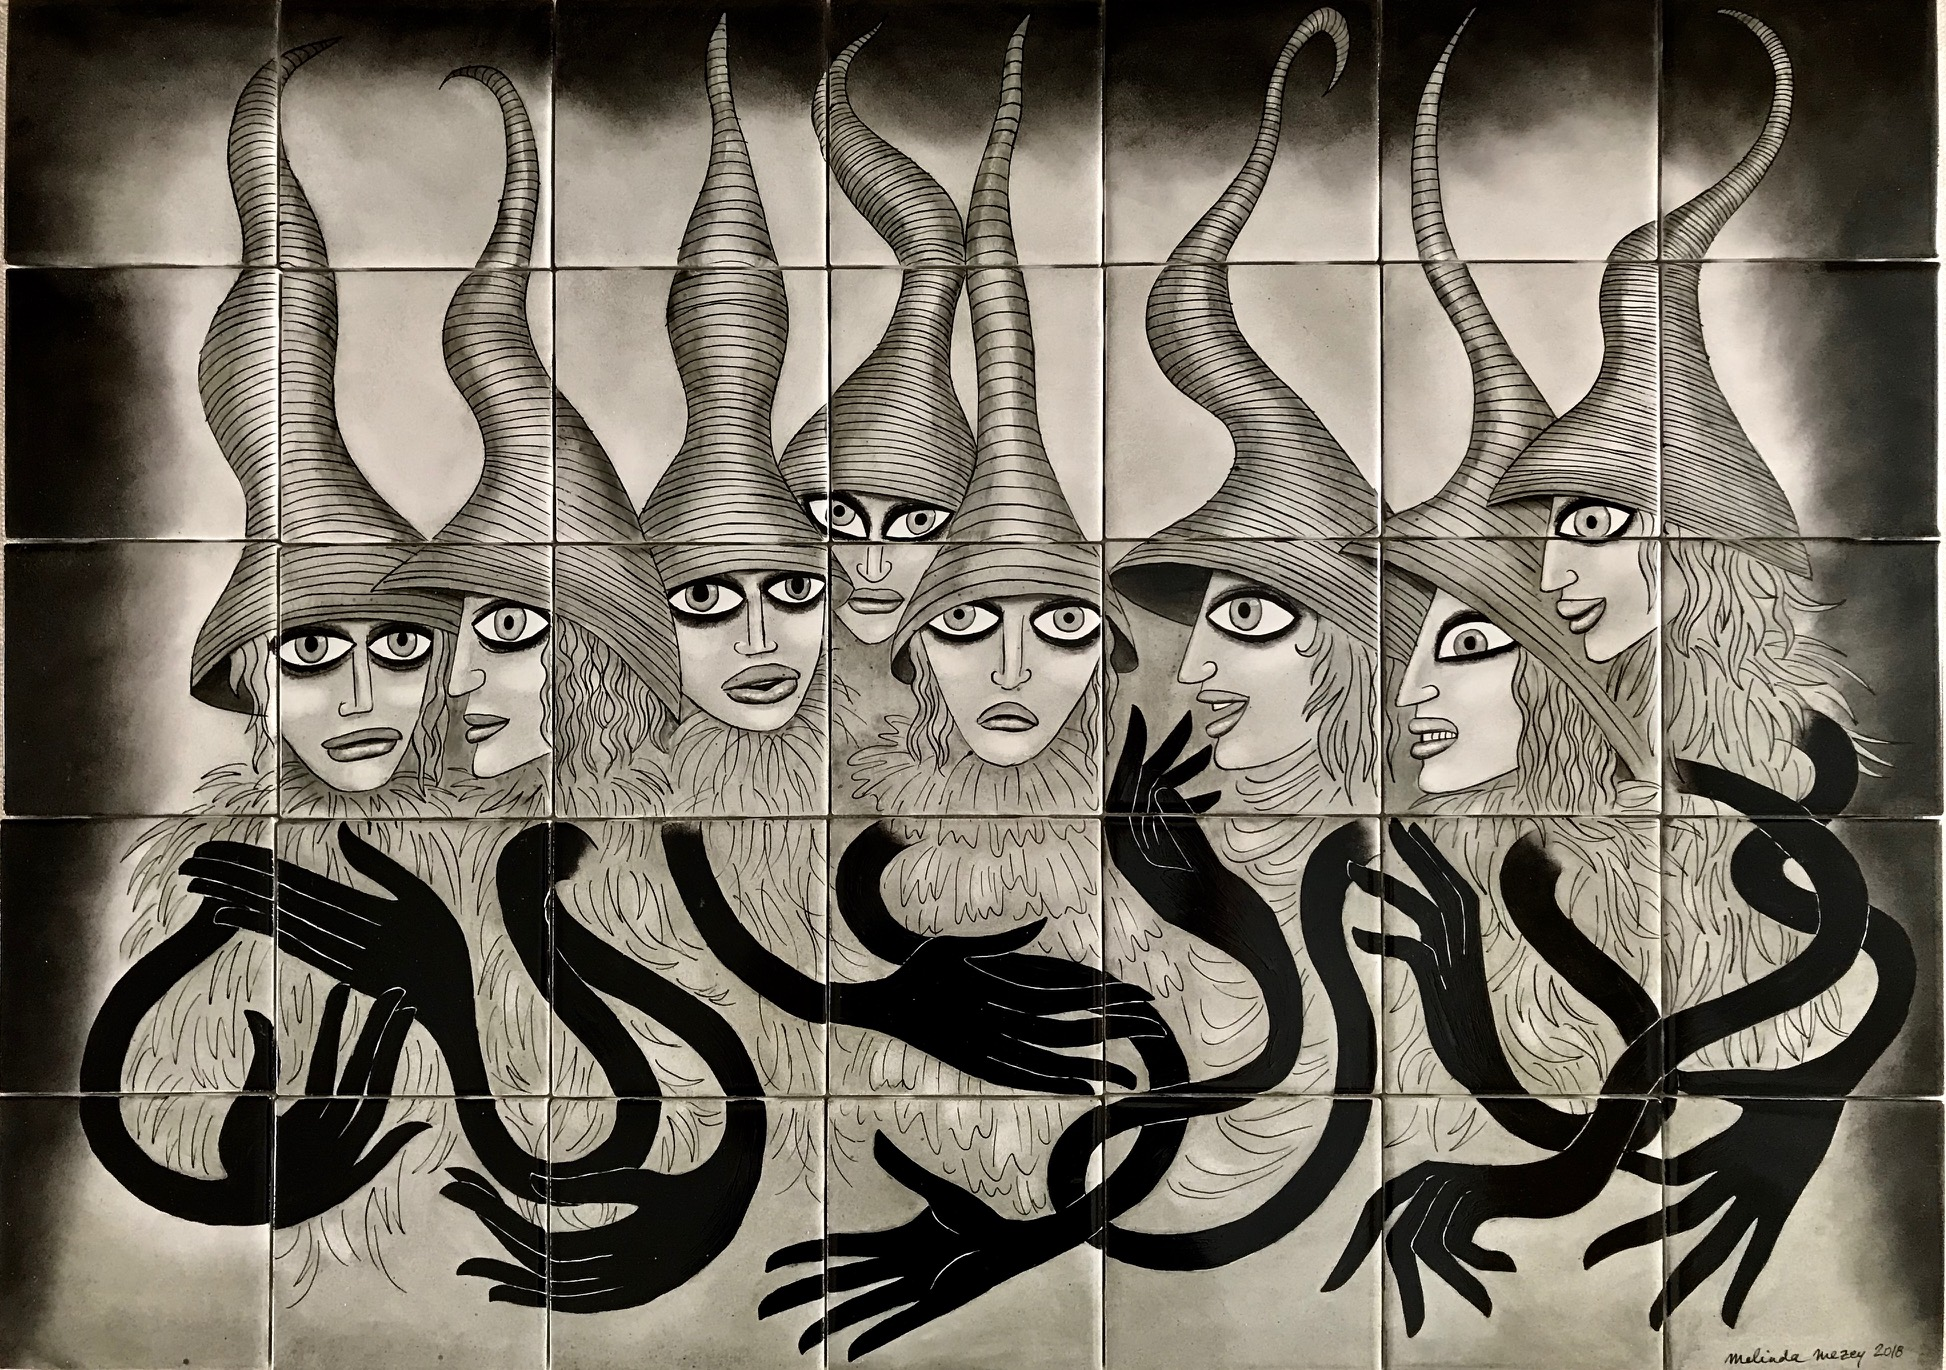 Black Witches  - 30 x 21 in, 76 x 54 cm